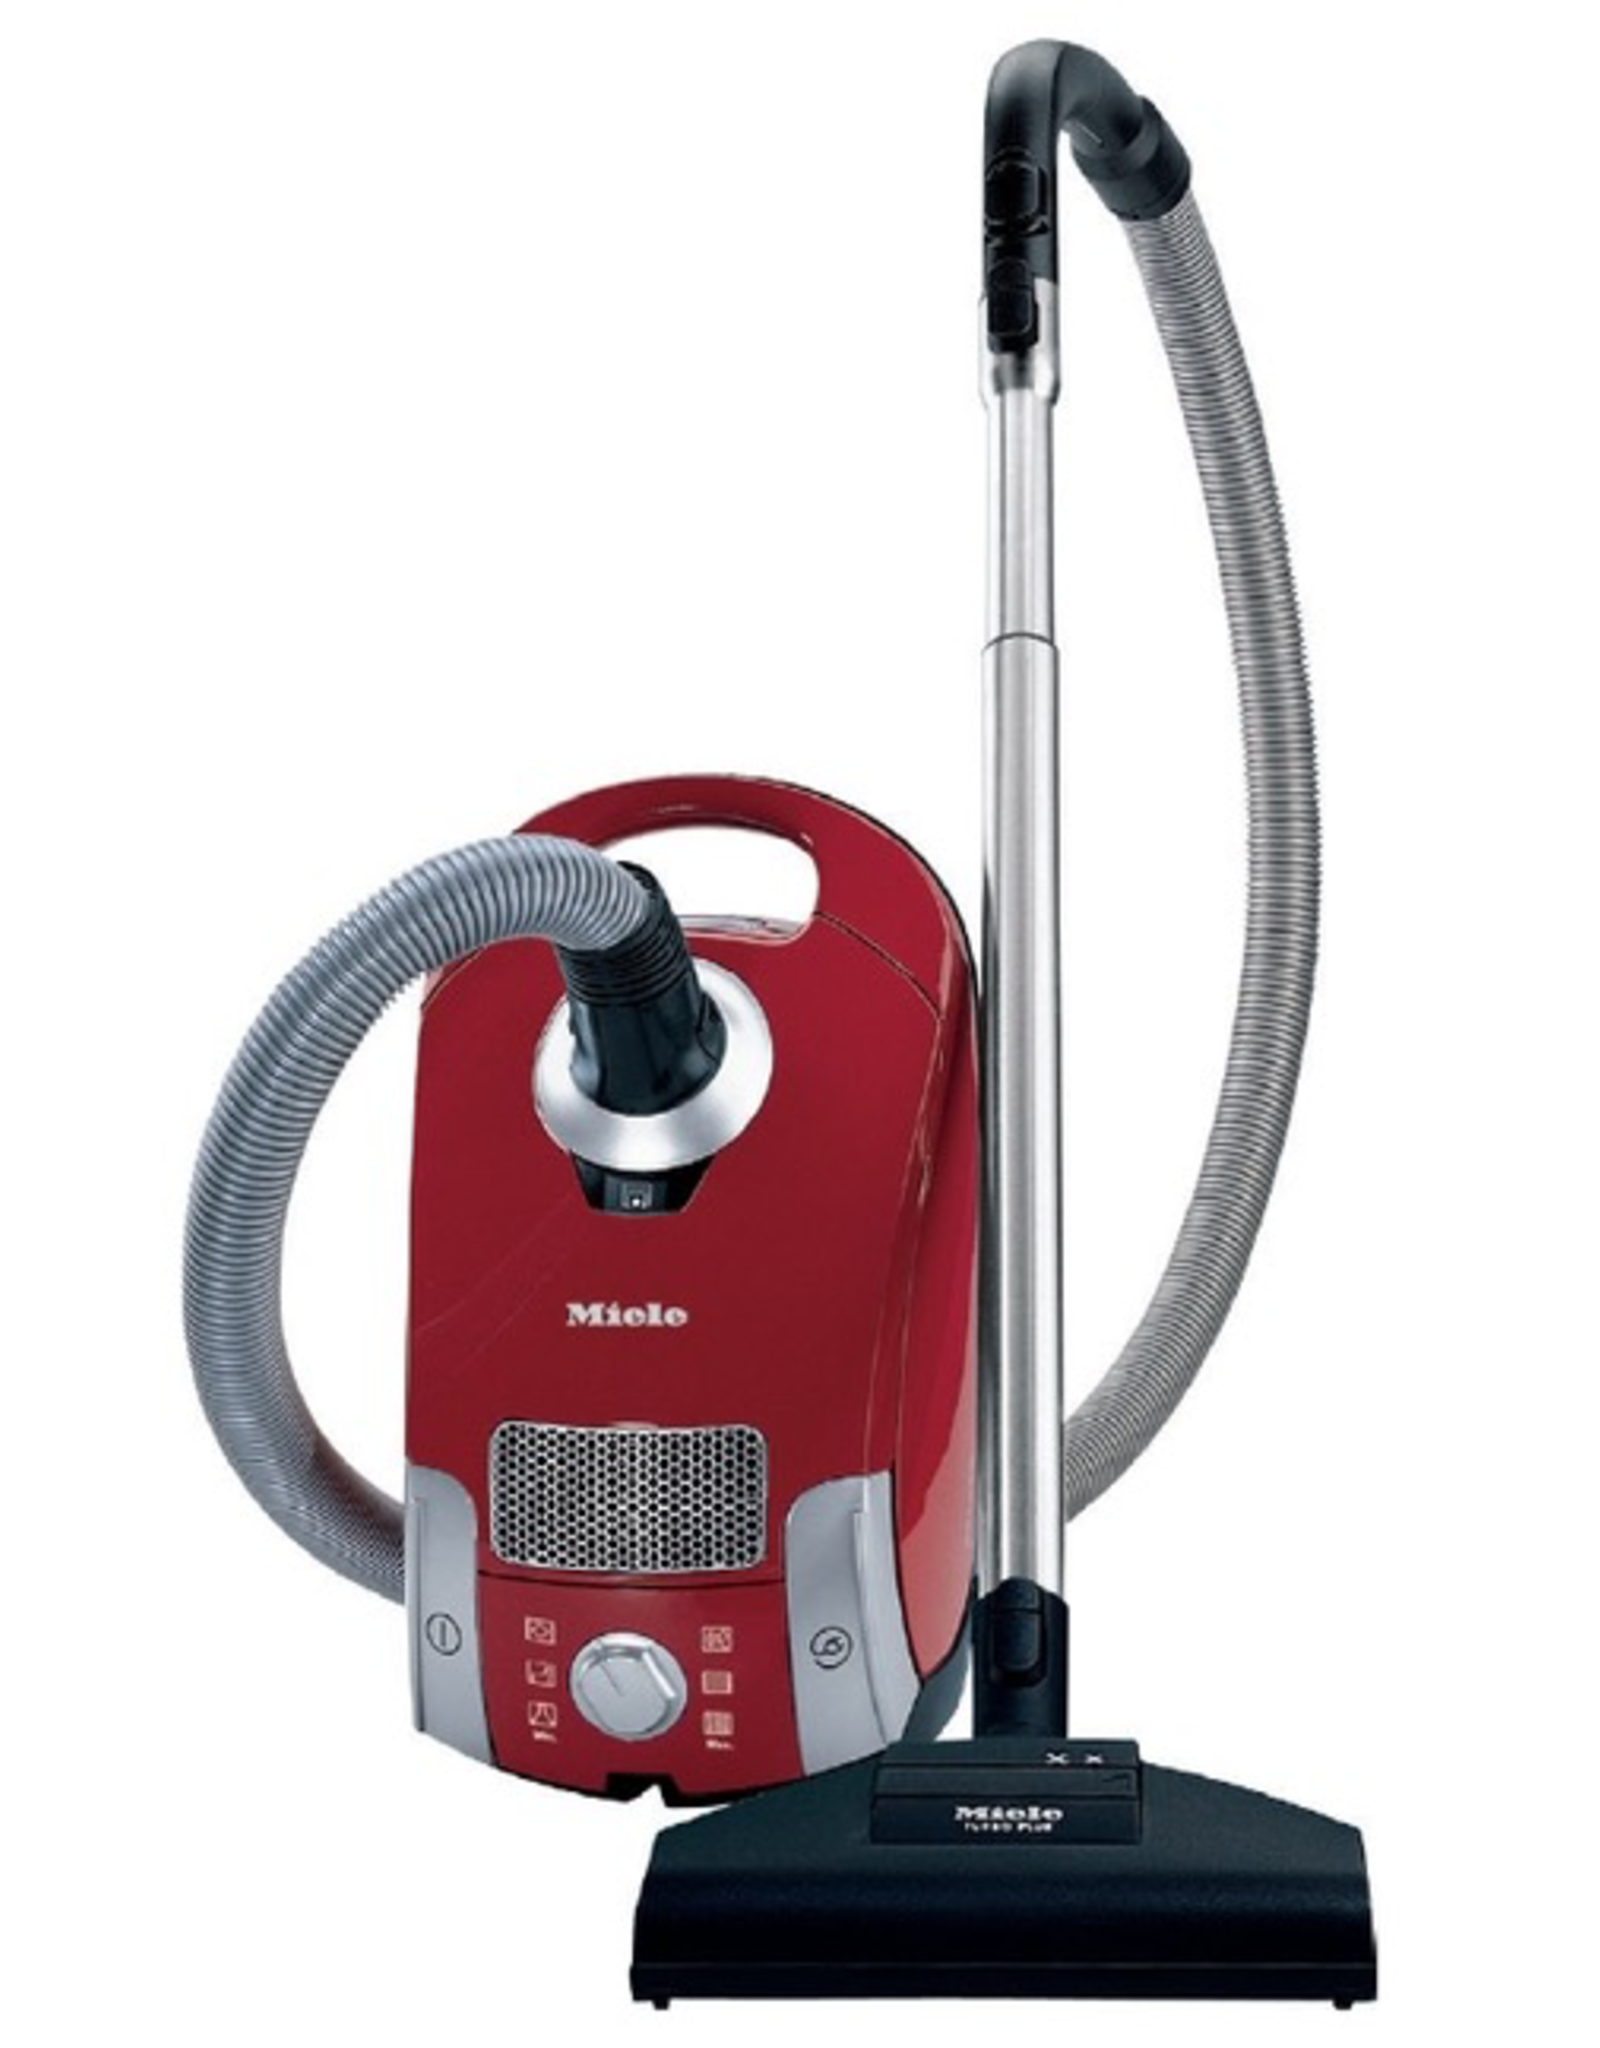 Miele Miele Compact C1 HomeCare Canister Vacuum with Turbo Brush